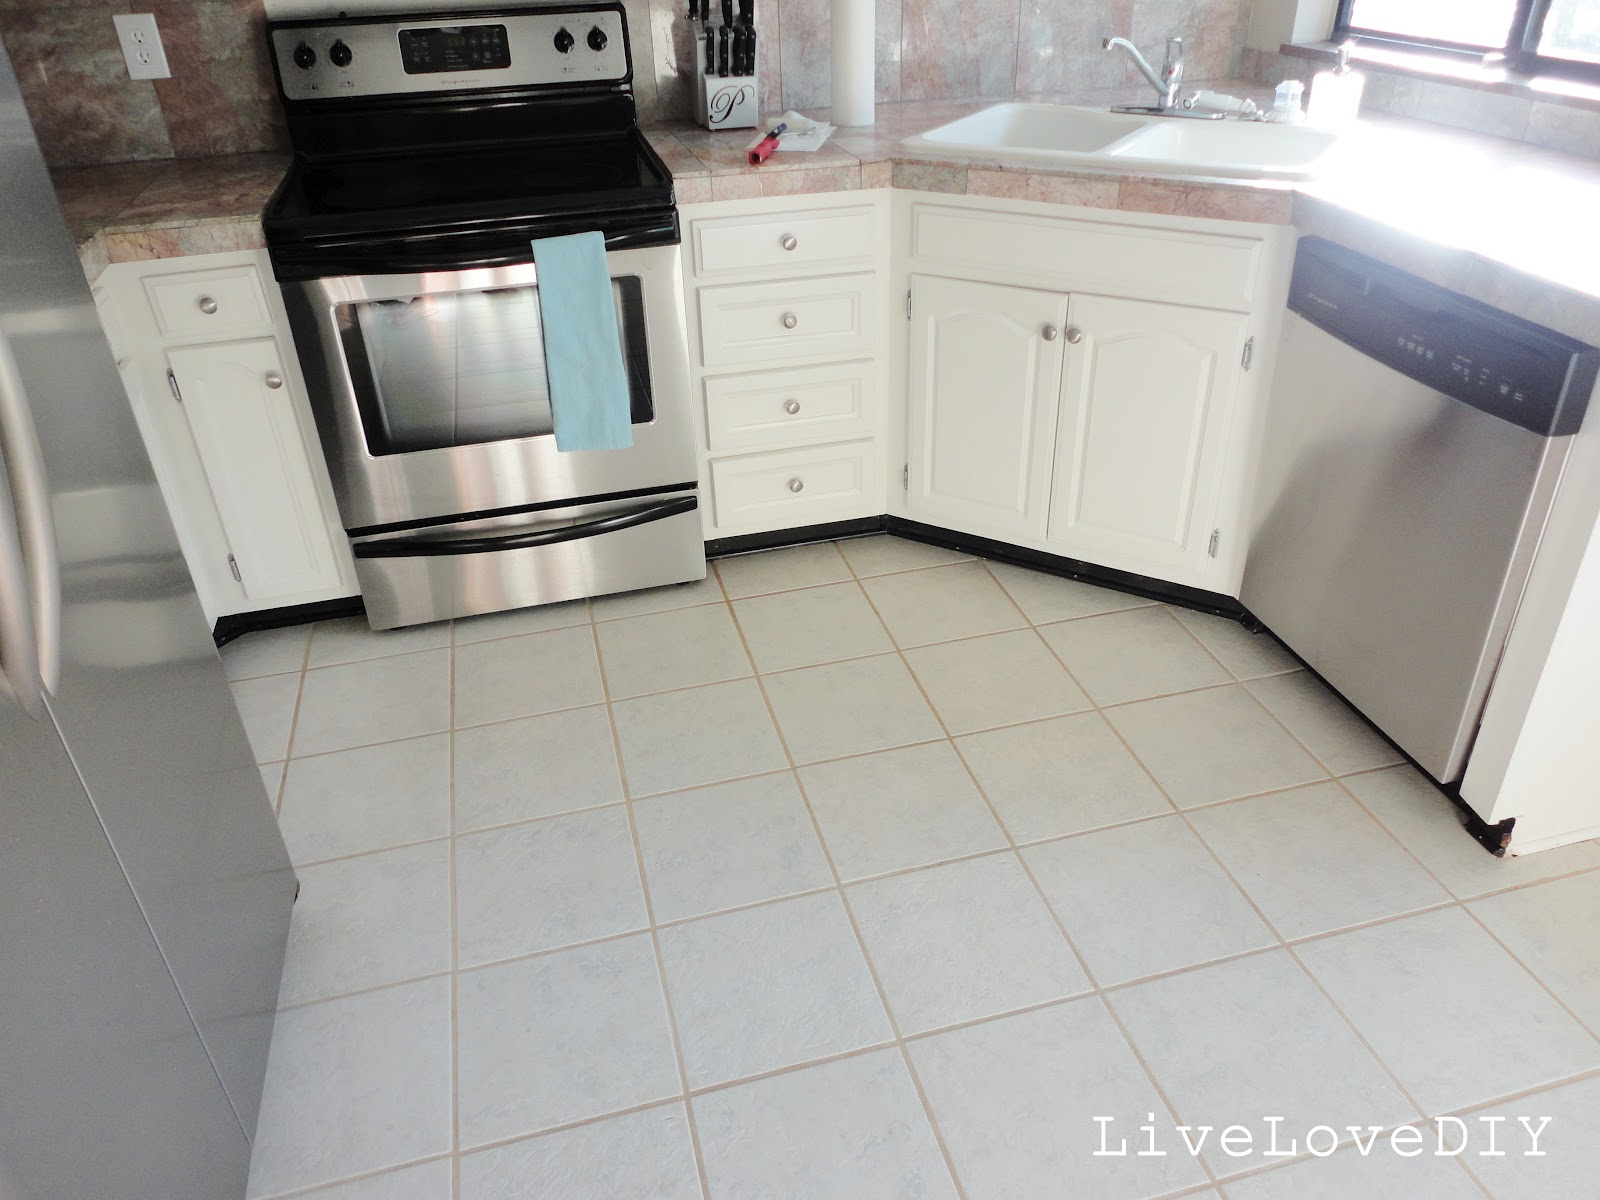 Livelovediy how to restore dirty tile grout livelovediy dailygadgetfo Images